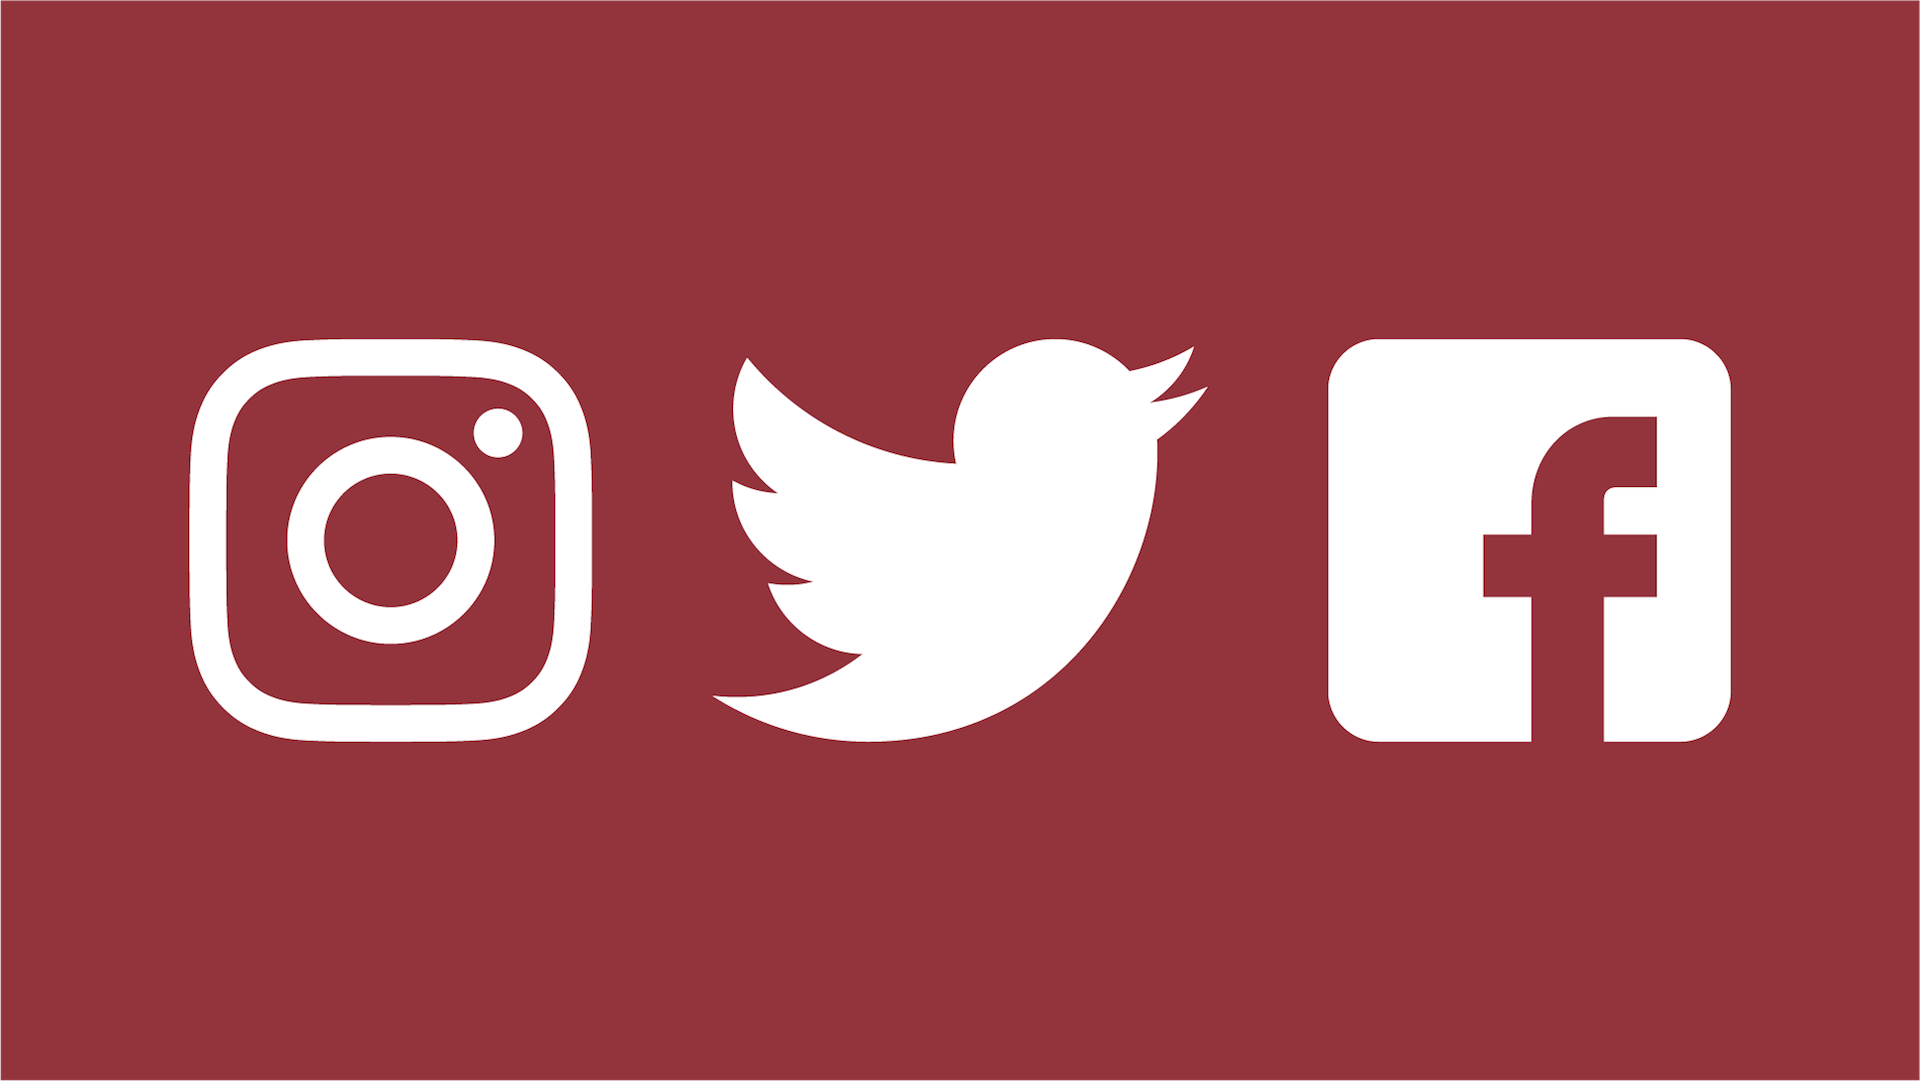 Connect with us online  - Instagram  |  Twitter  |  Facebook